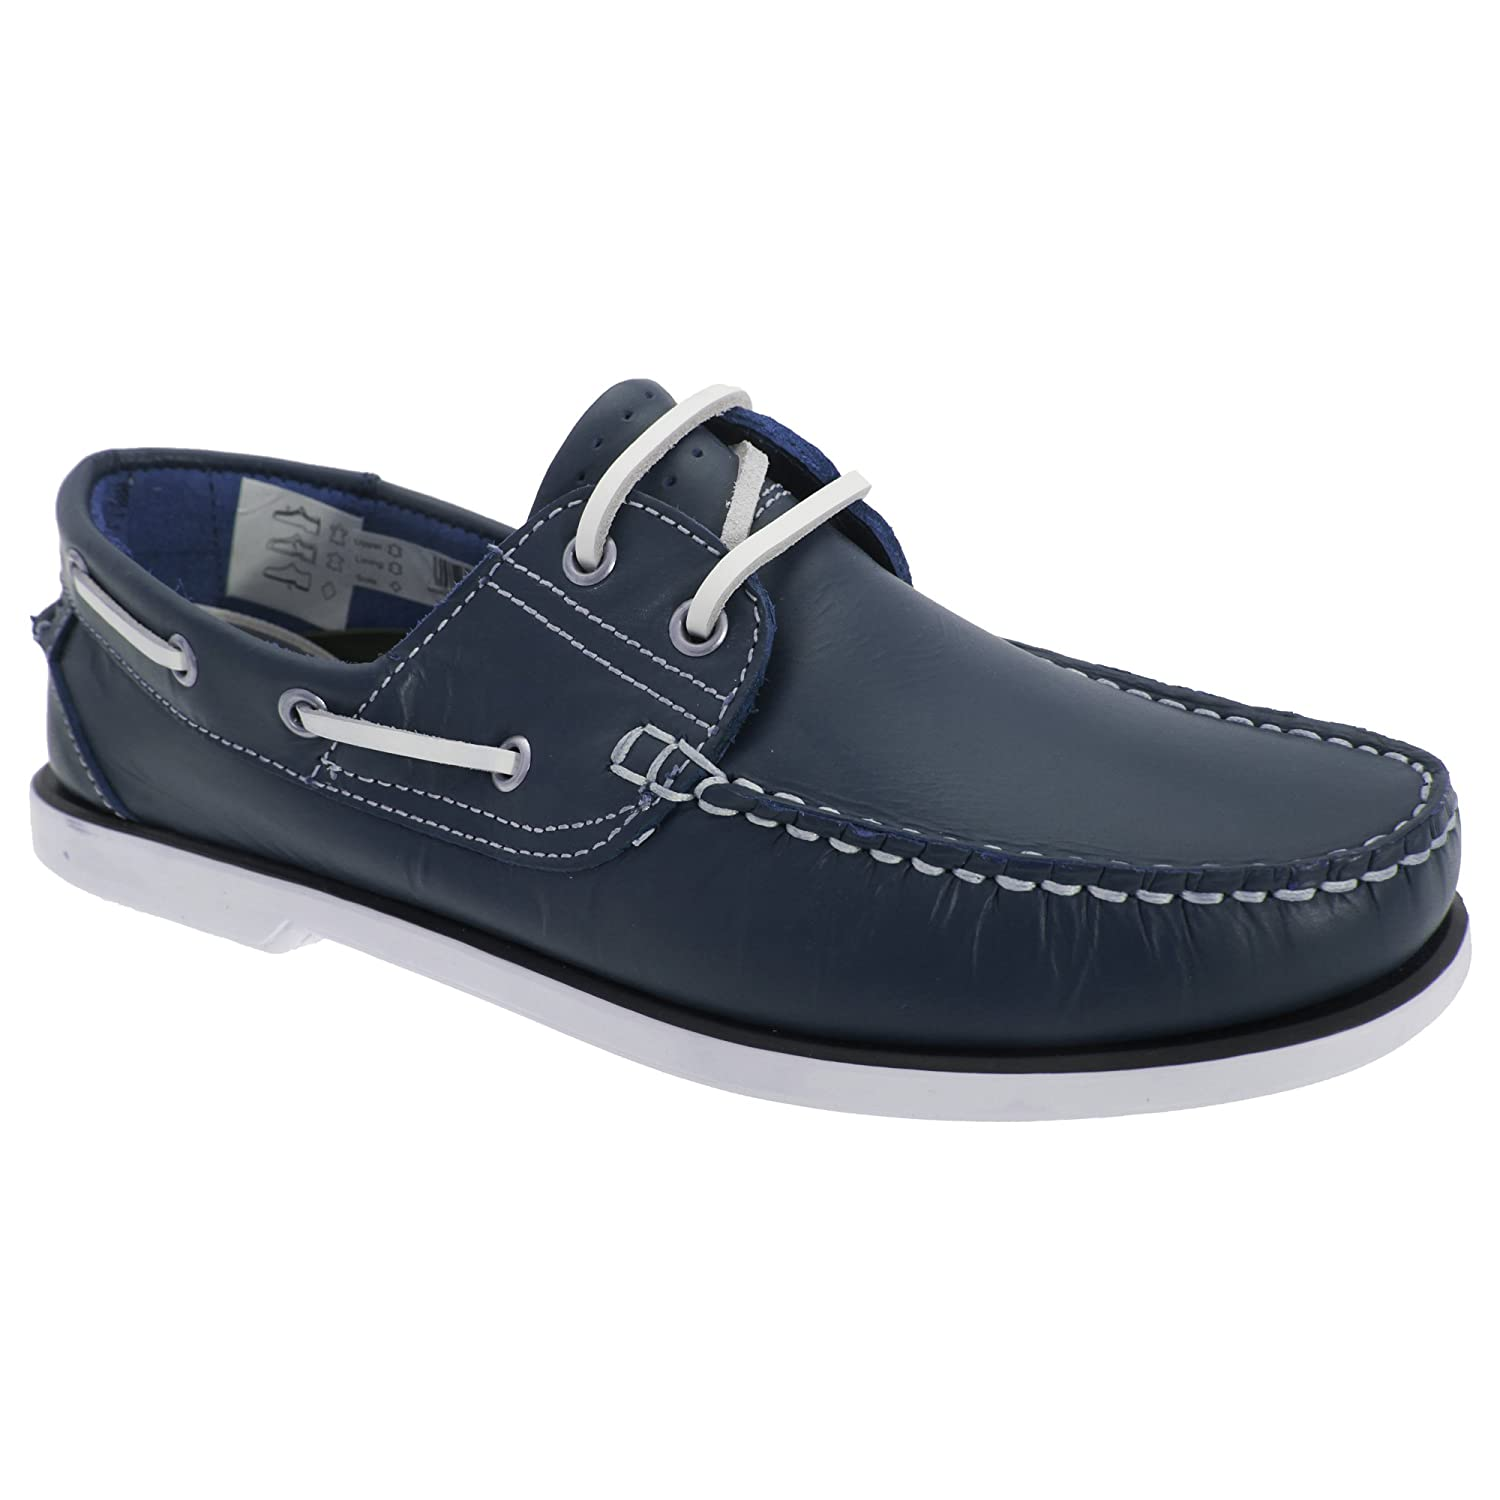 Amazon Com Dek Mens Leather Non Marking Moccasin Boat